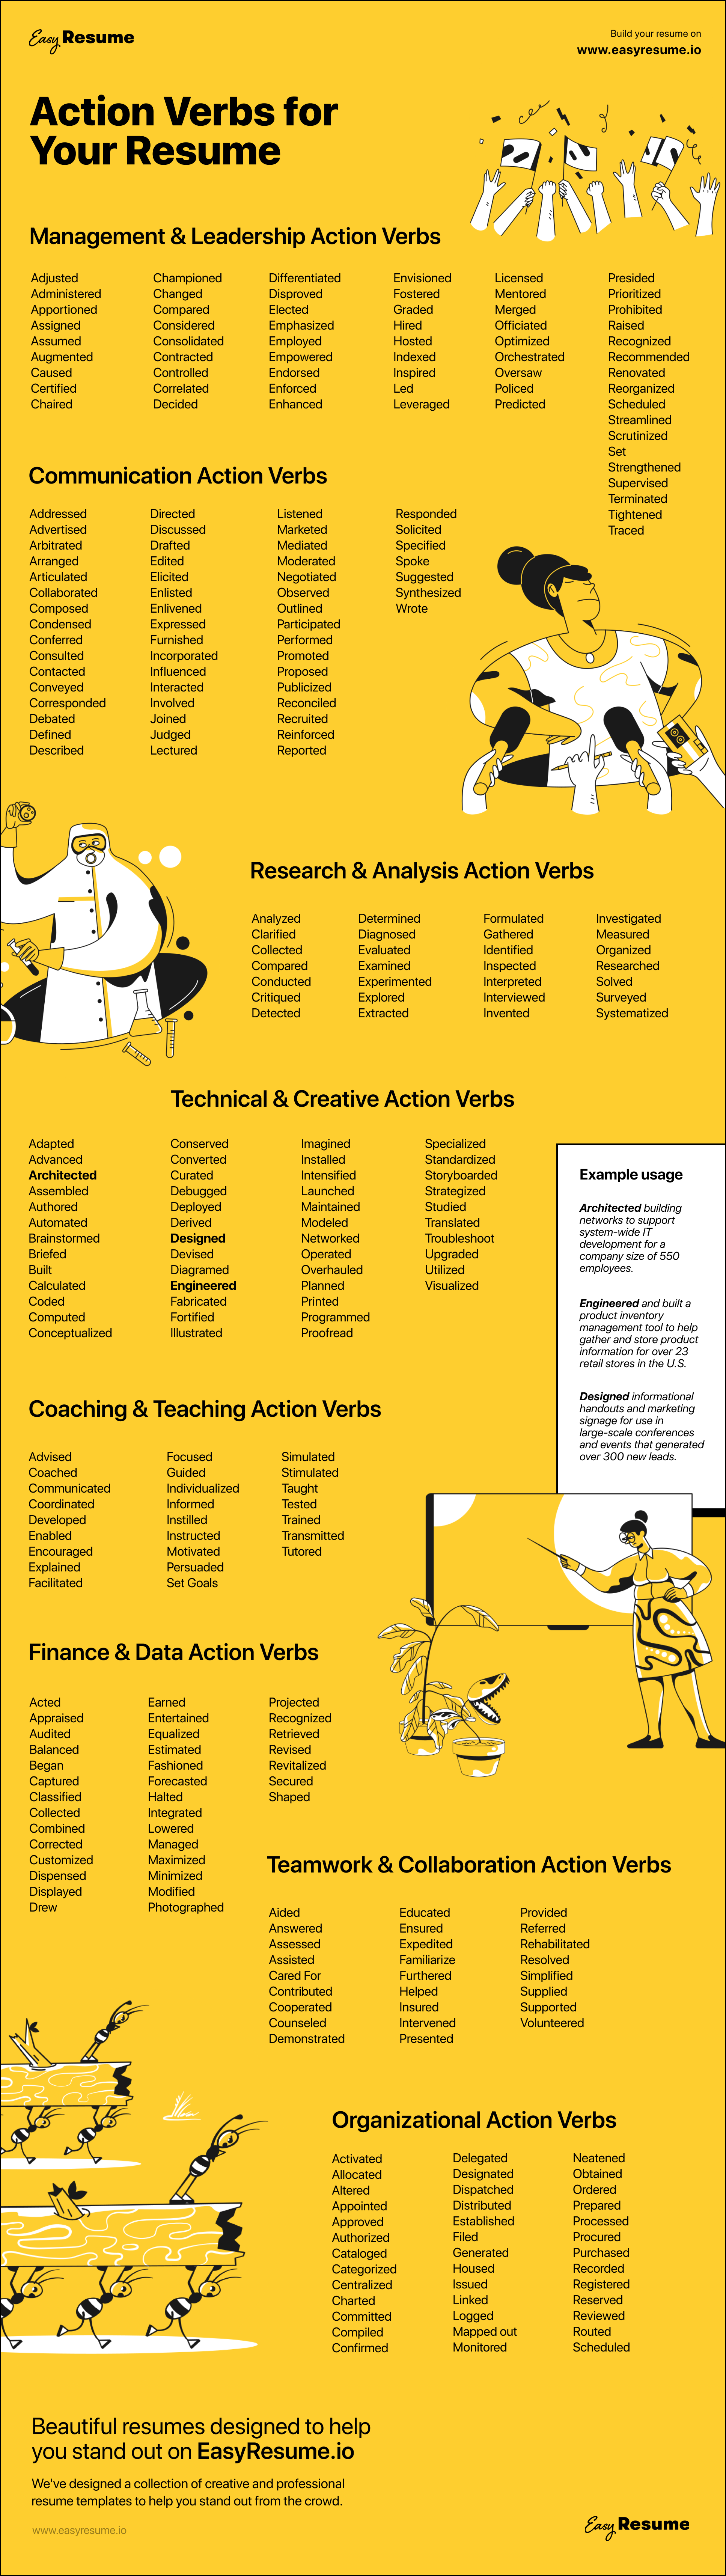 resume action verbs infographic